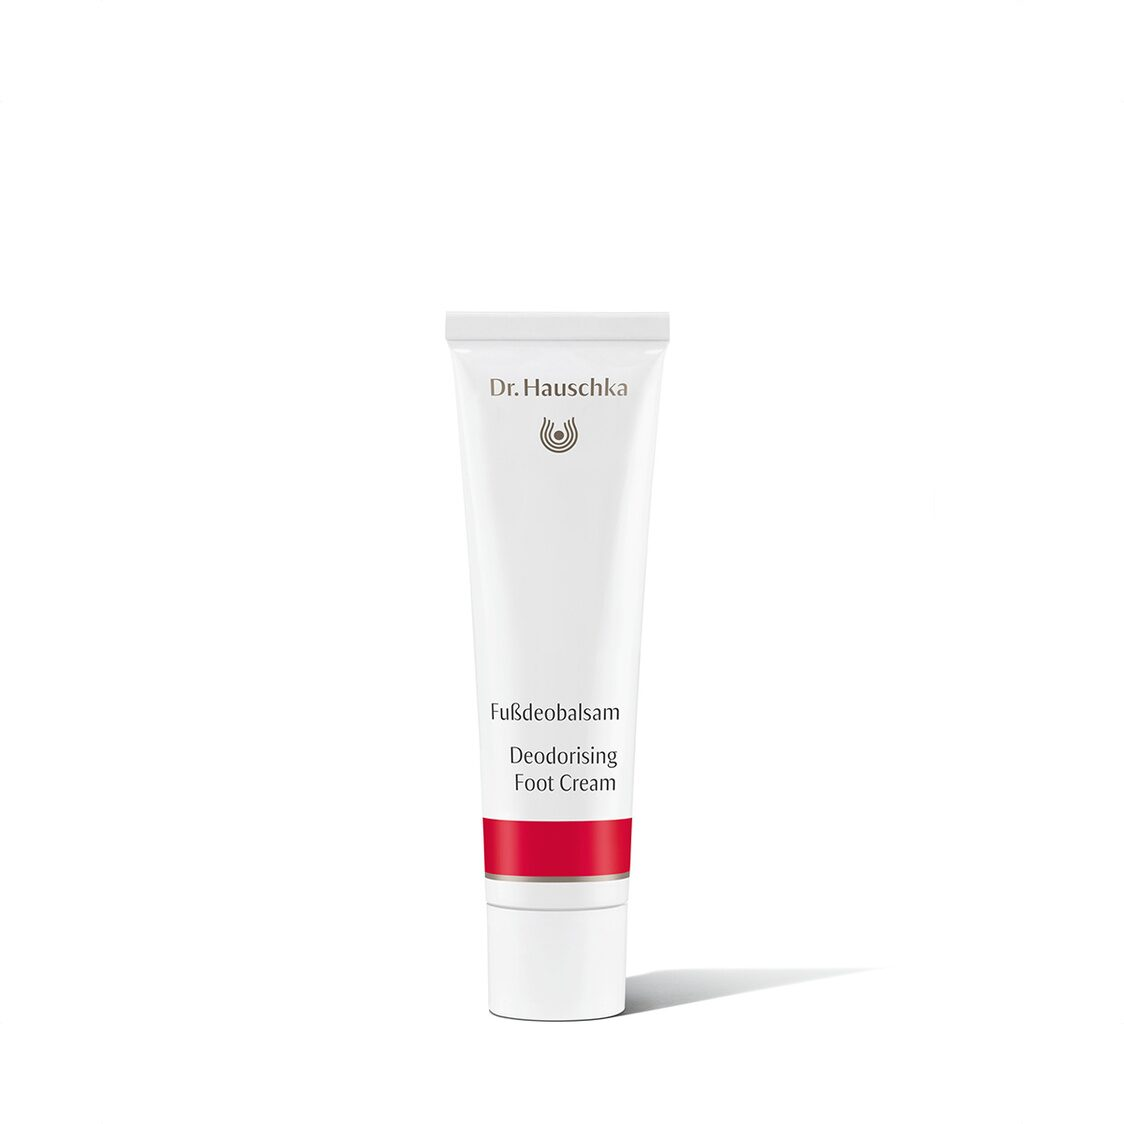 Deodorising Foot Cream 30ml